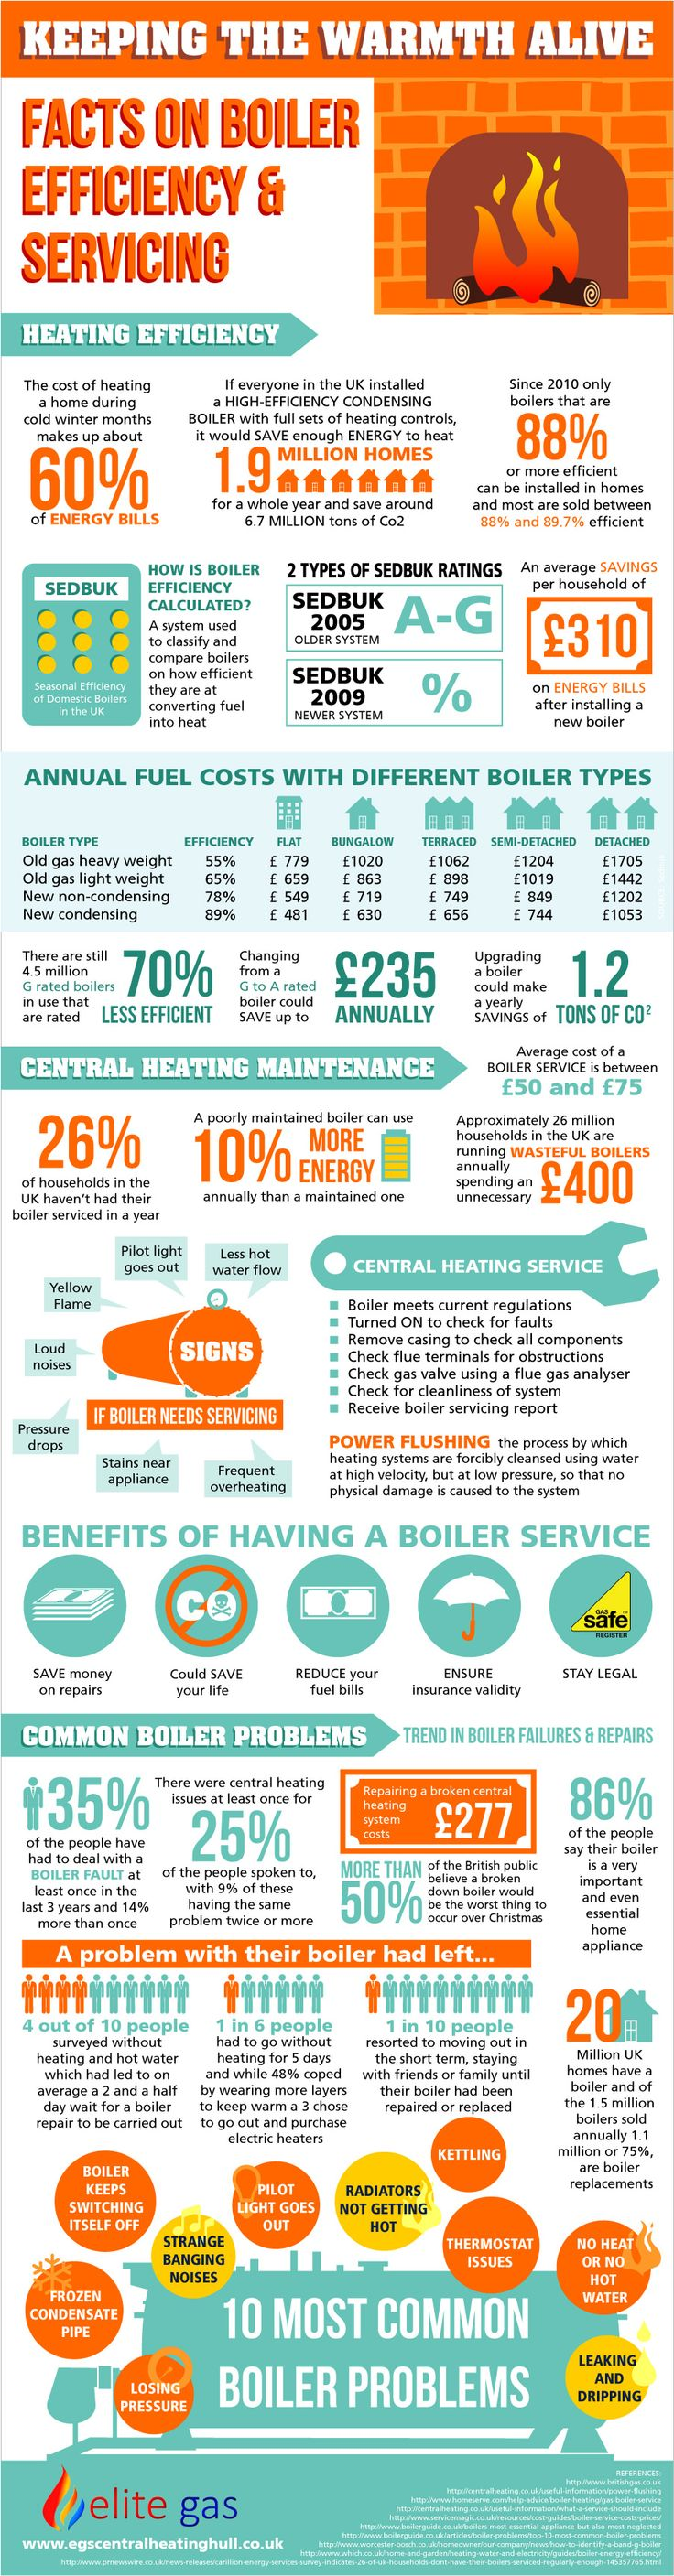 Keeping the Warmth Alive: Facts on Boiler Efficiency and Servicing